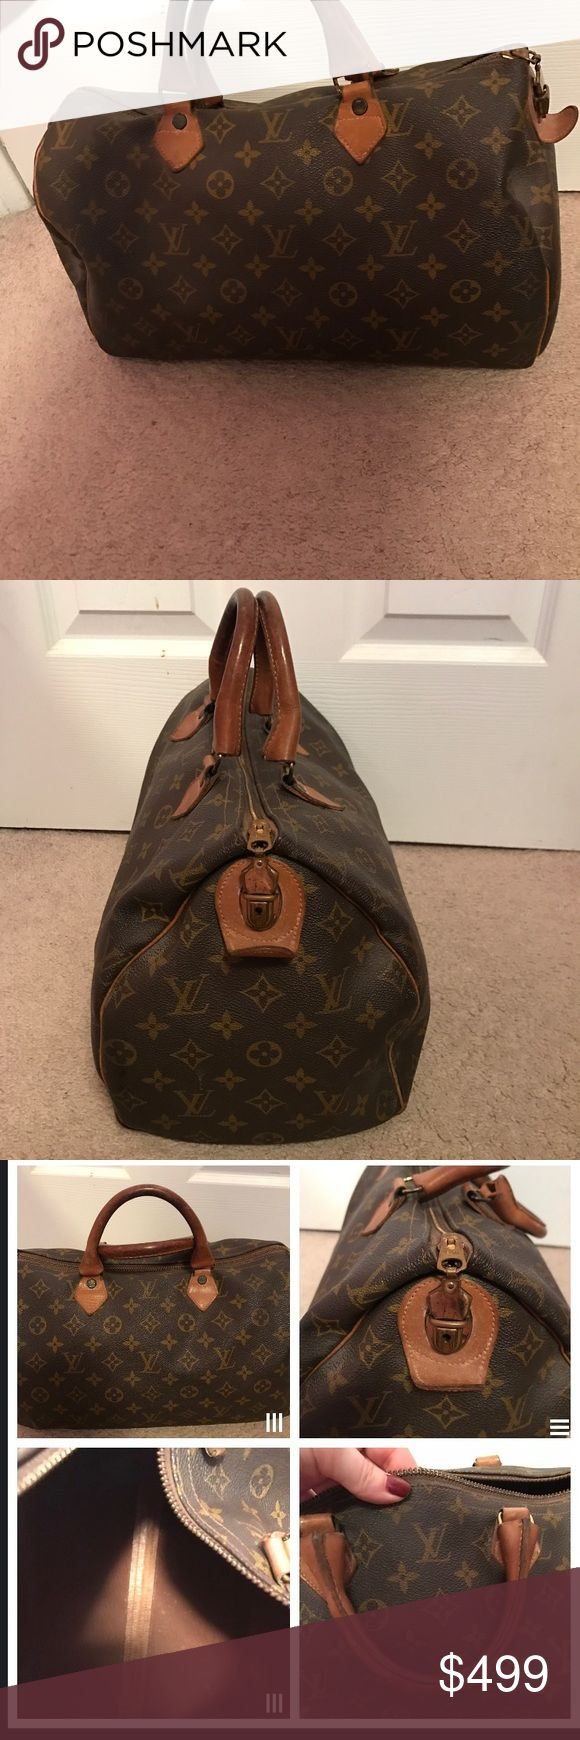 Original model speedy bag First ever Louis Vuitton speedy bag. Gently used condition. Louis Vuitton Bags